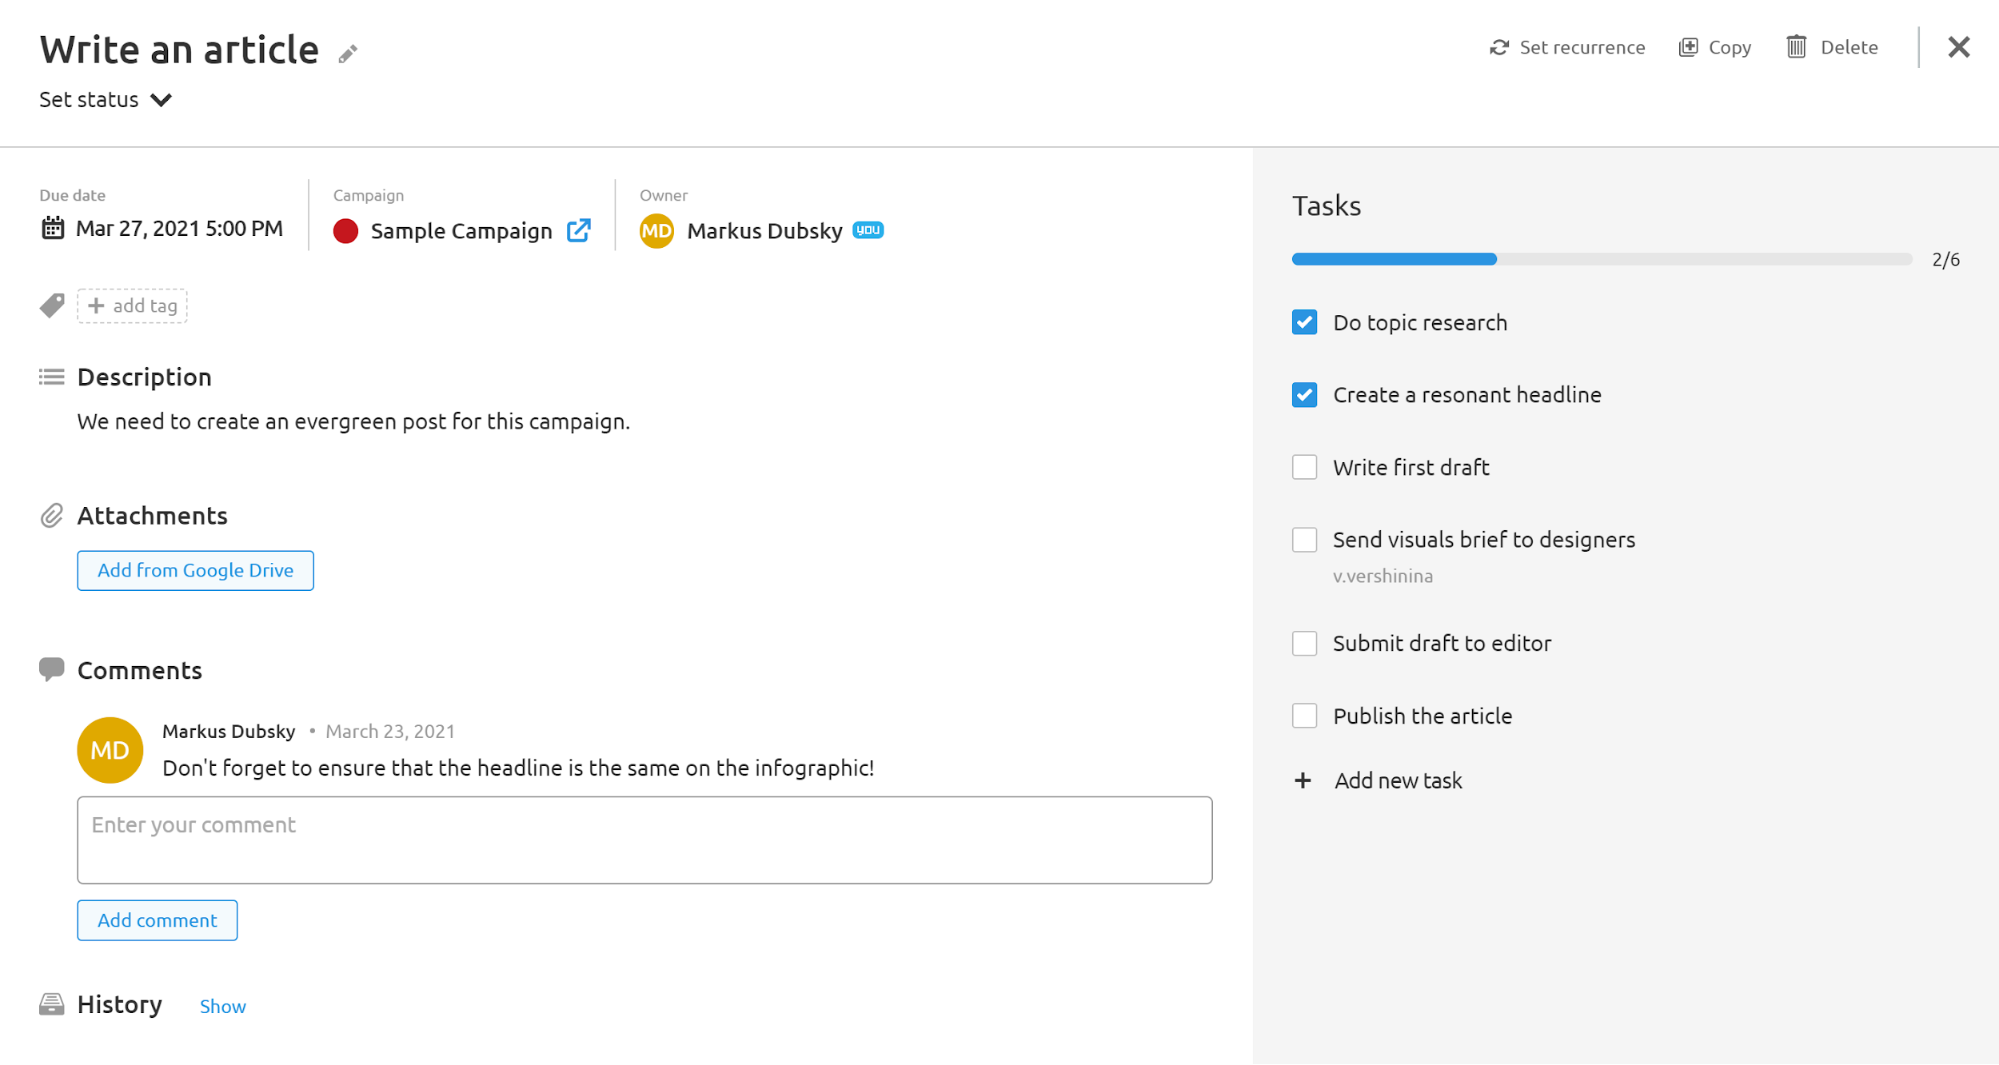 Agency Project Management Software. Task setting